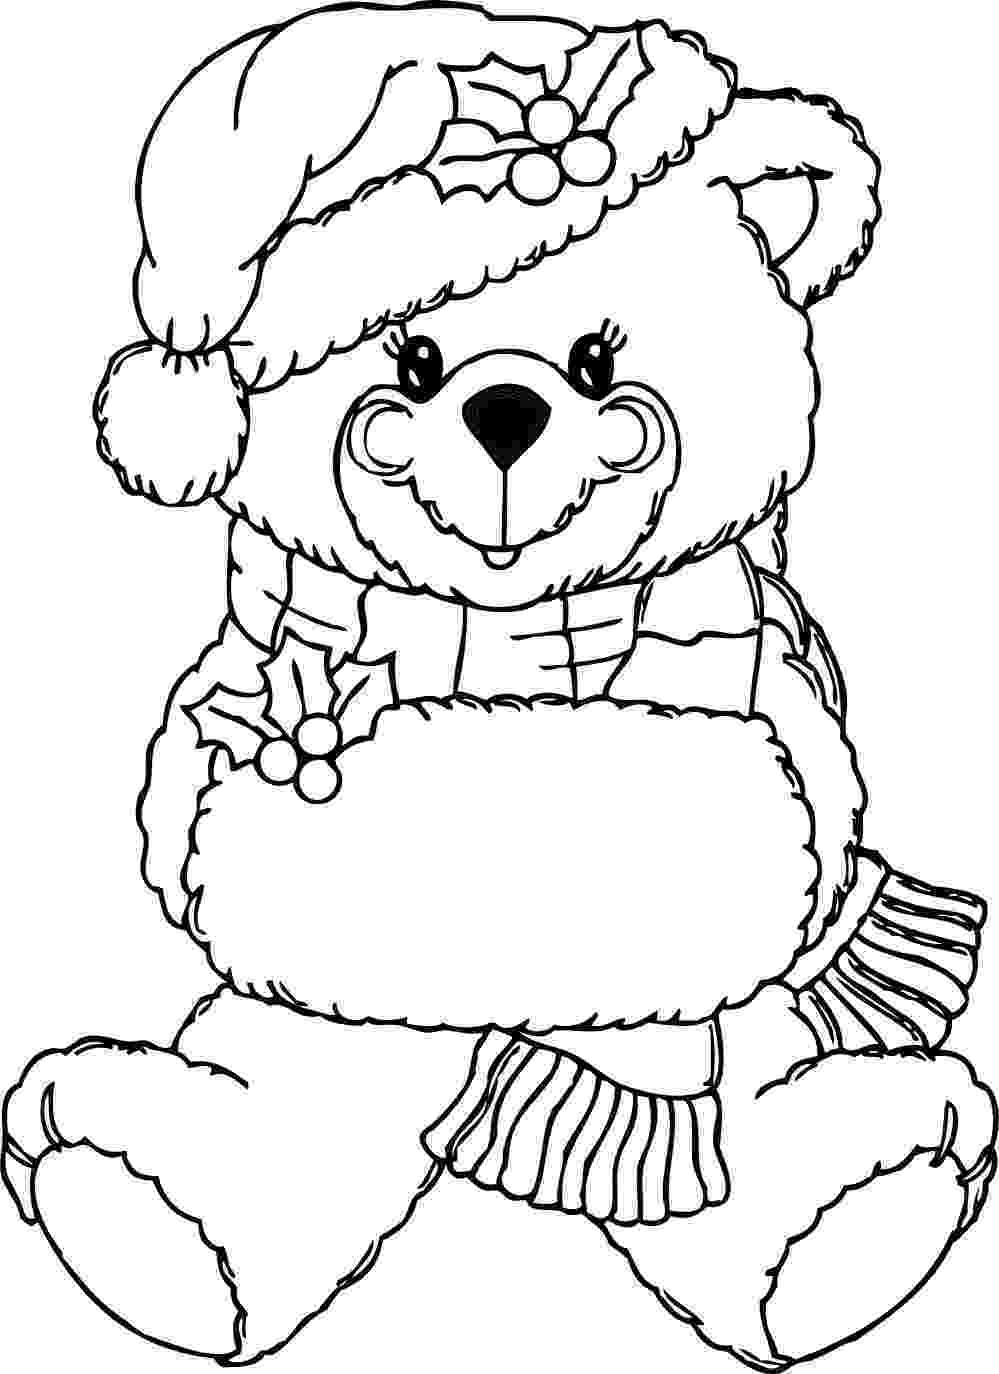 coloring page bear free printable teddy bear coloring pages for kids page bear coloring